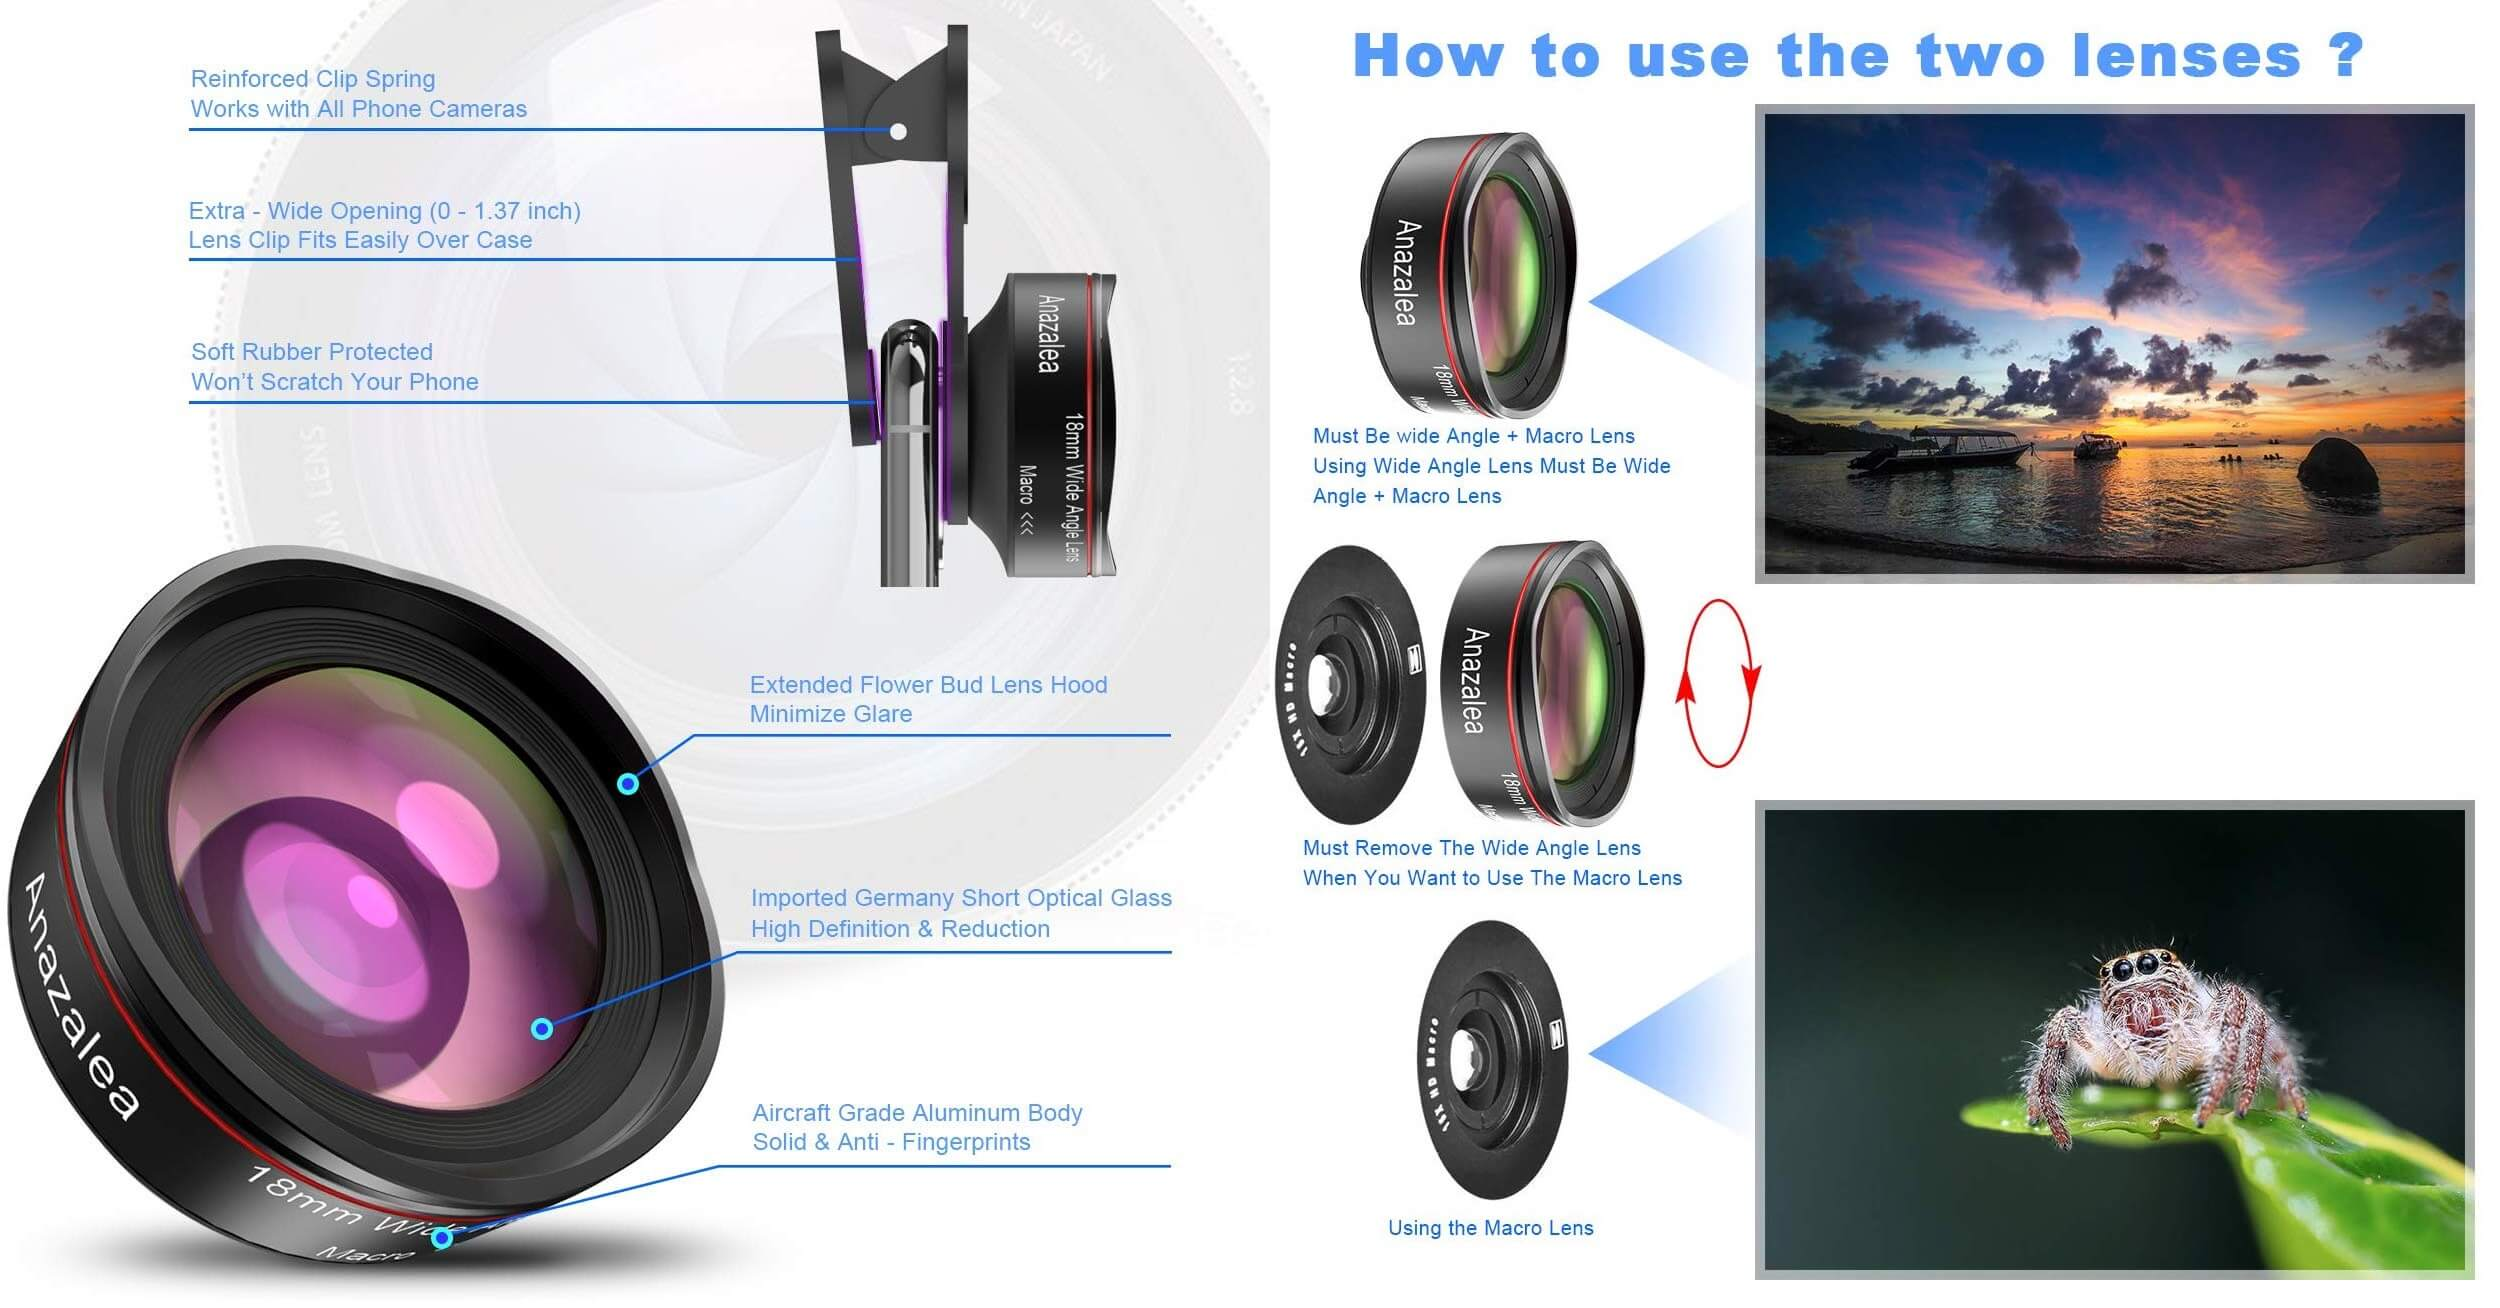 Android Camera Lens: Anazalea 2-IN-1 Lens-Features